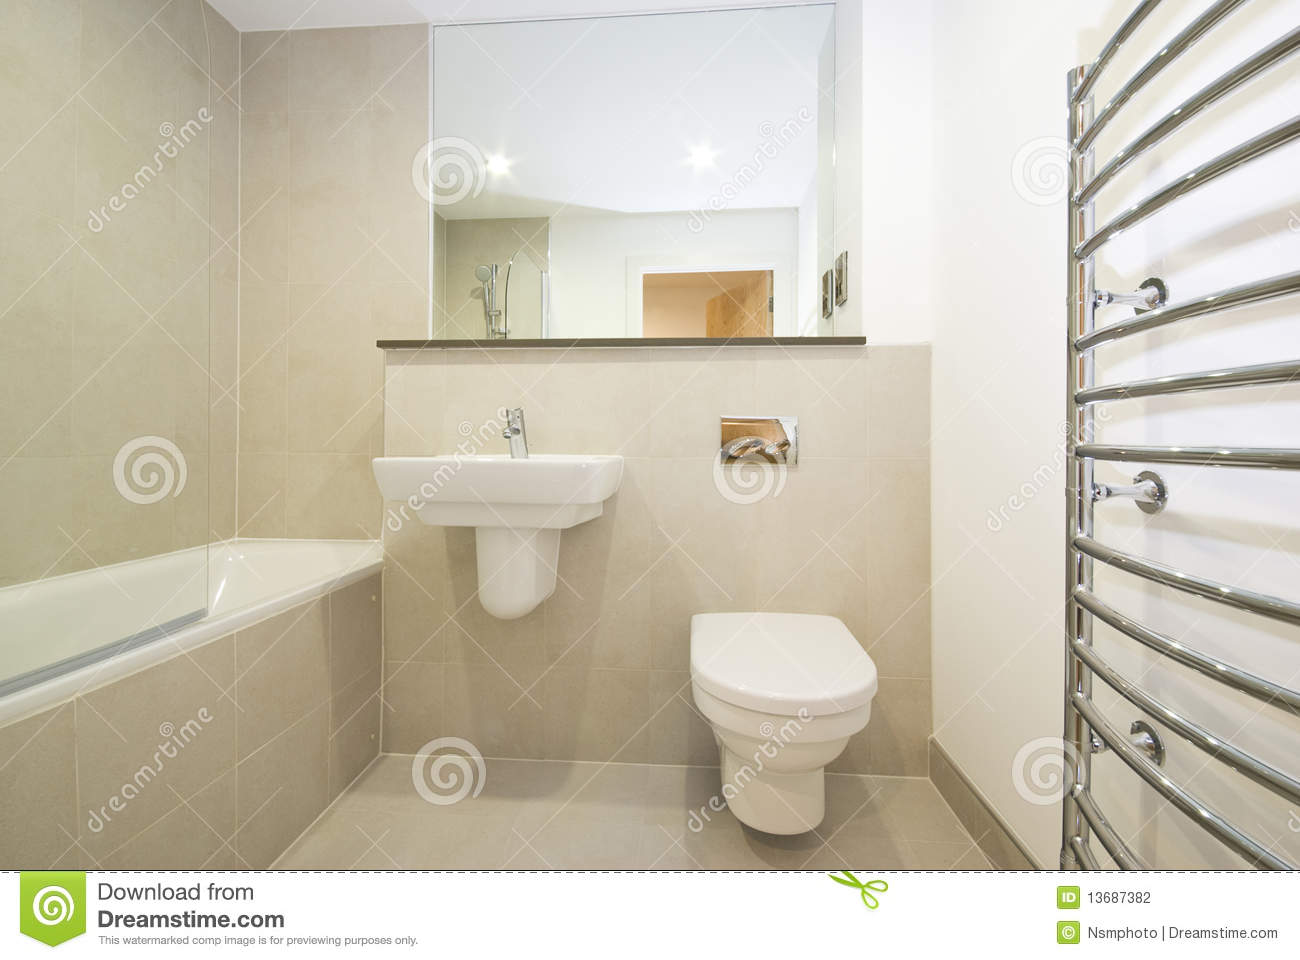 Uberlegen Download Modern En Suie Bathroom In Beige Stock Photo   Image Of Interior,  Basin